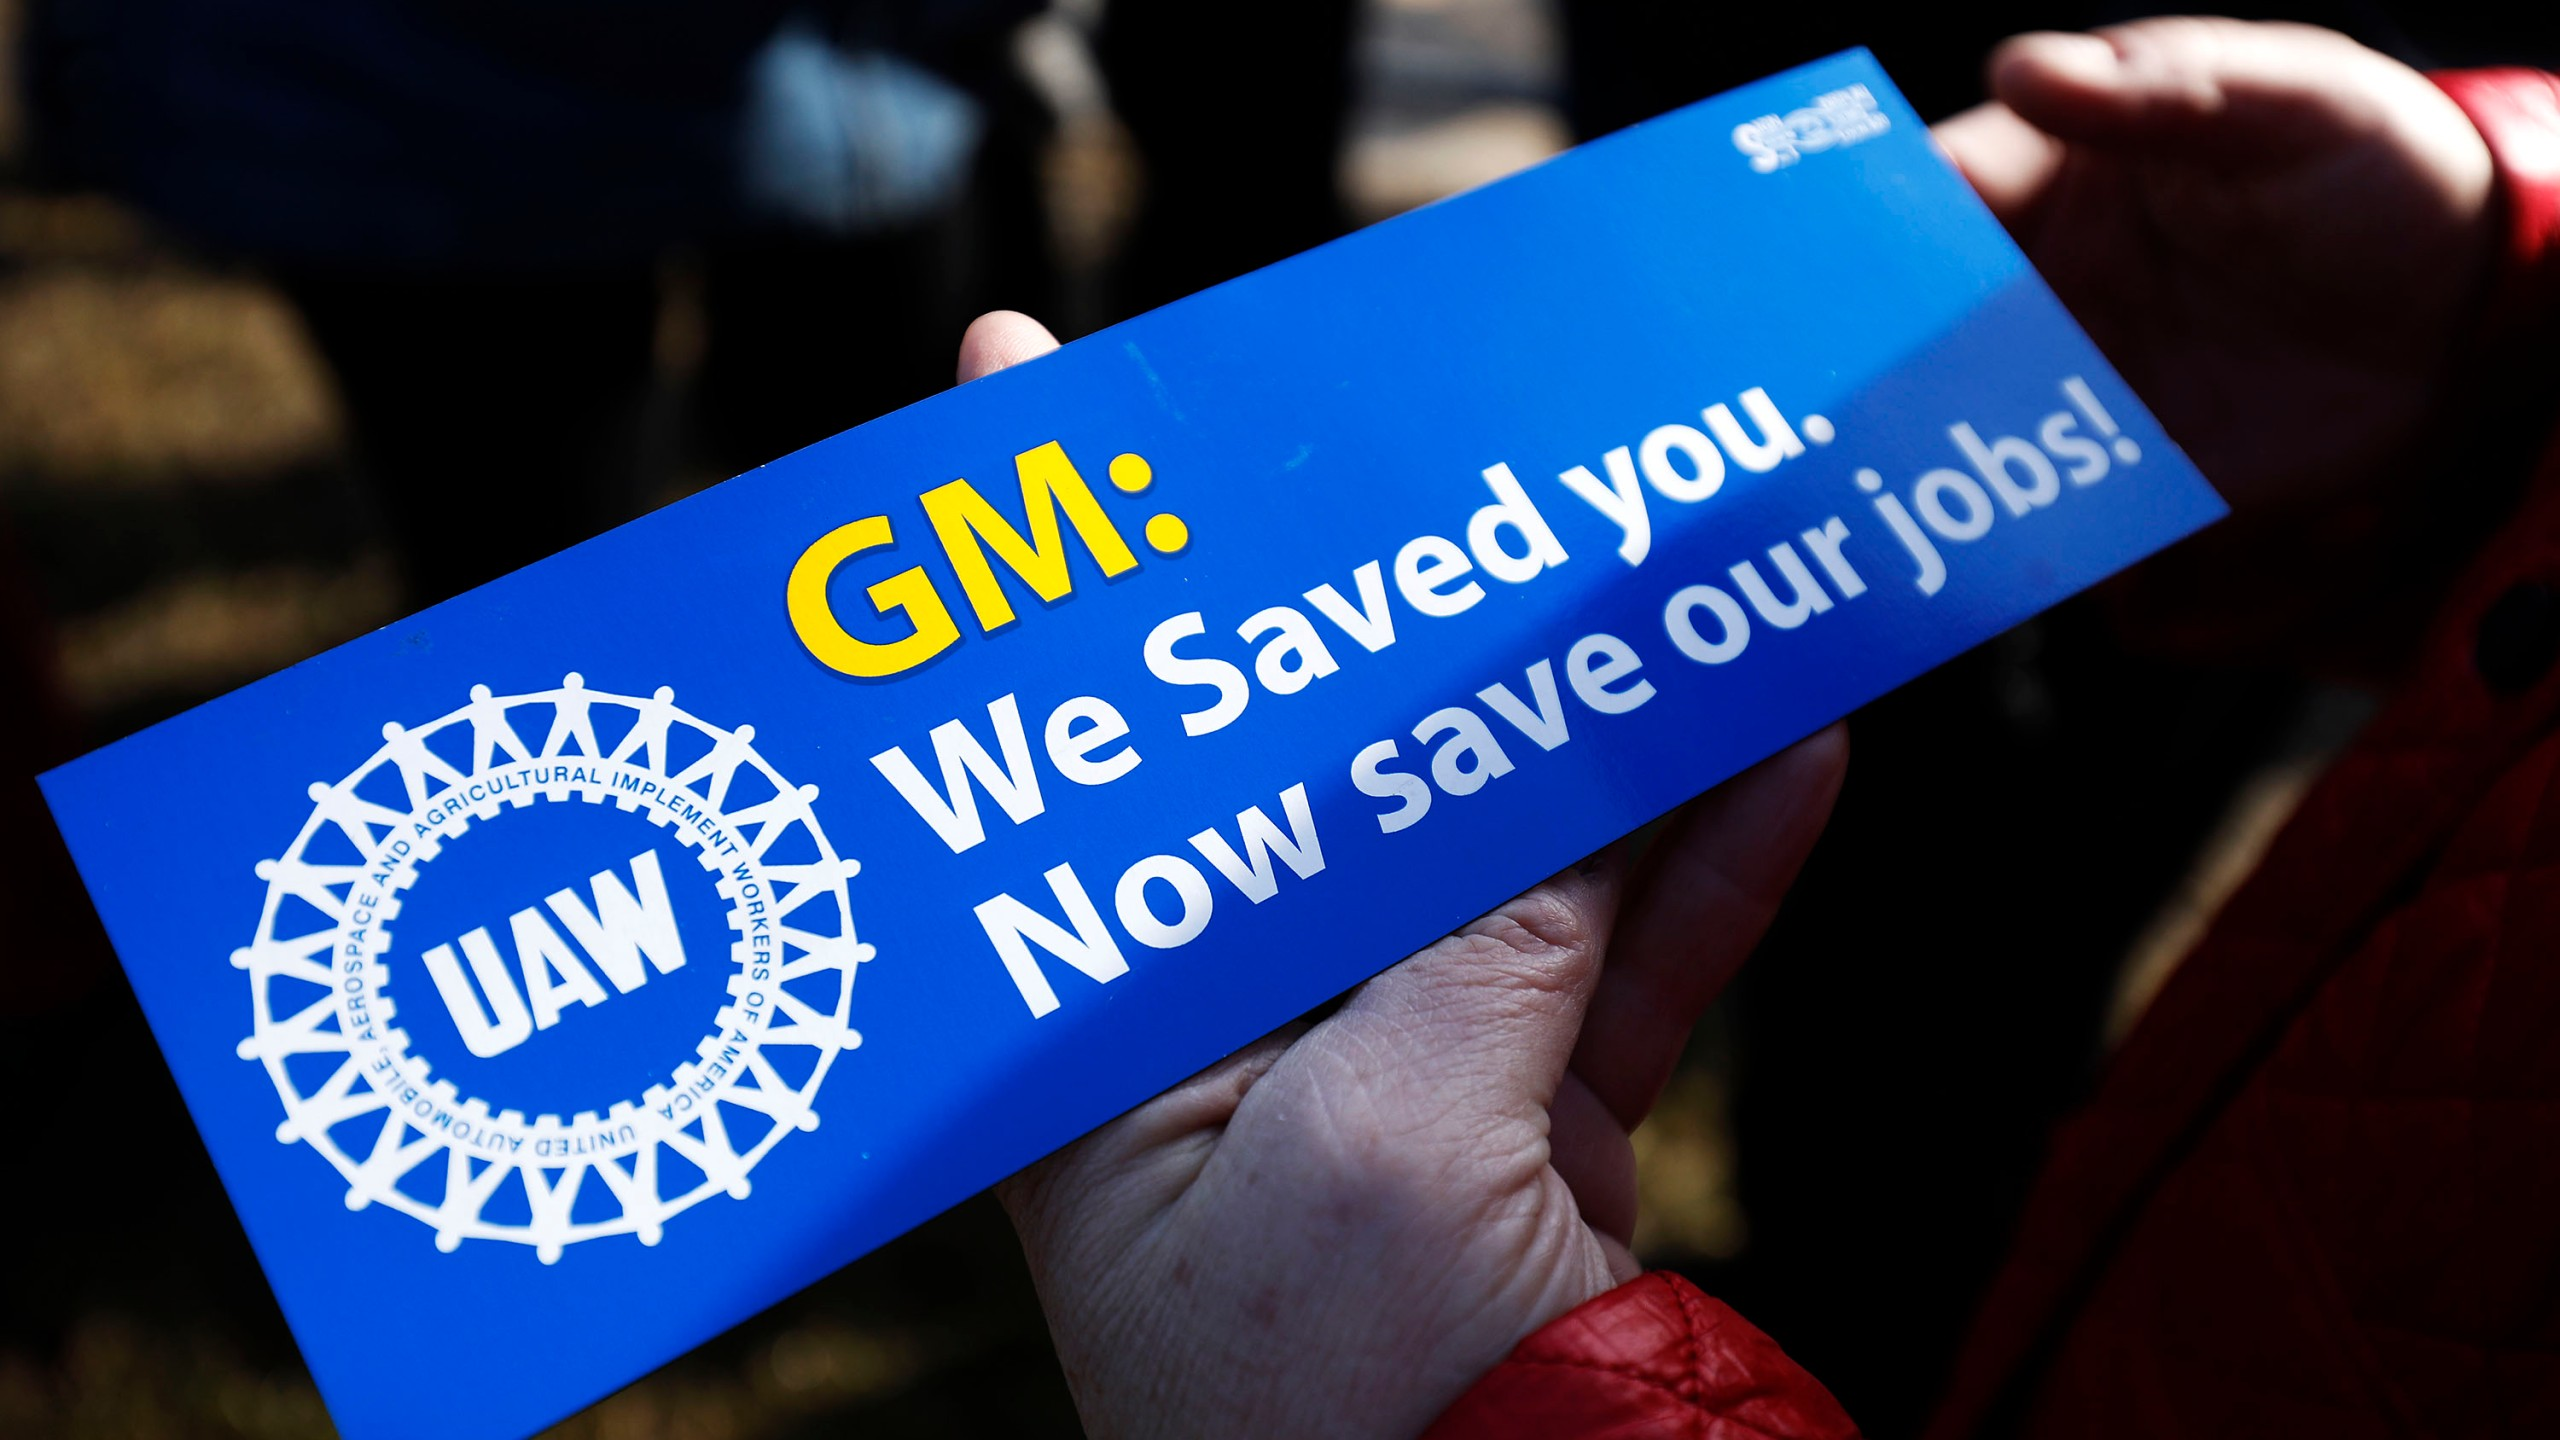 United Auto Workers members hold a prayer vigil at the General Motors Warren Transmission Operations Plant on Feb. 22, 2019, in Warren, Mich. Almost 300 people were being laid off at the plant as a result of GM's decision to idle the Warren facility. (Credit: Bill Pugliano/Getty Images)